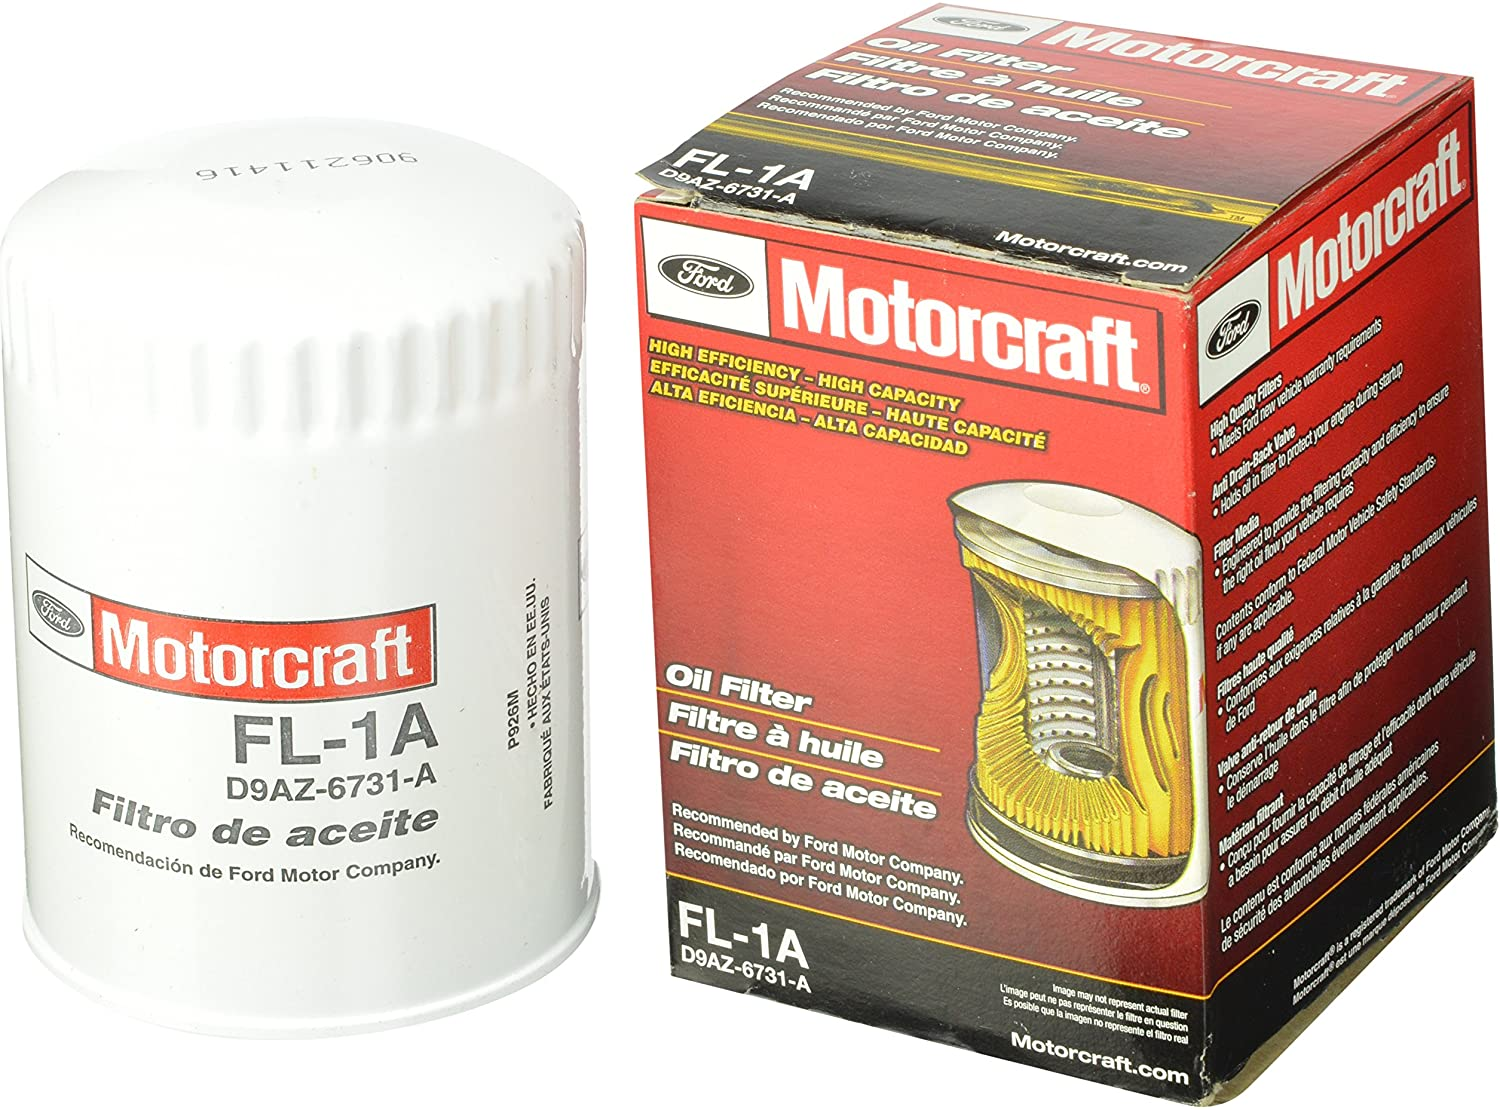 Amazon.com: Motorcraft FL1A filtro de aceite: Automotive